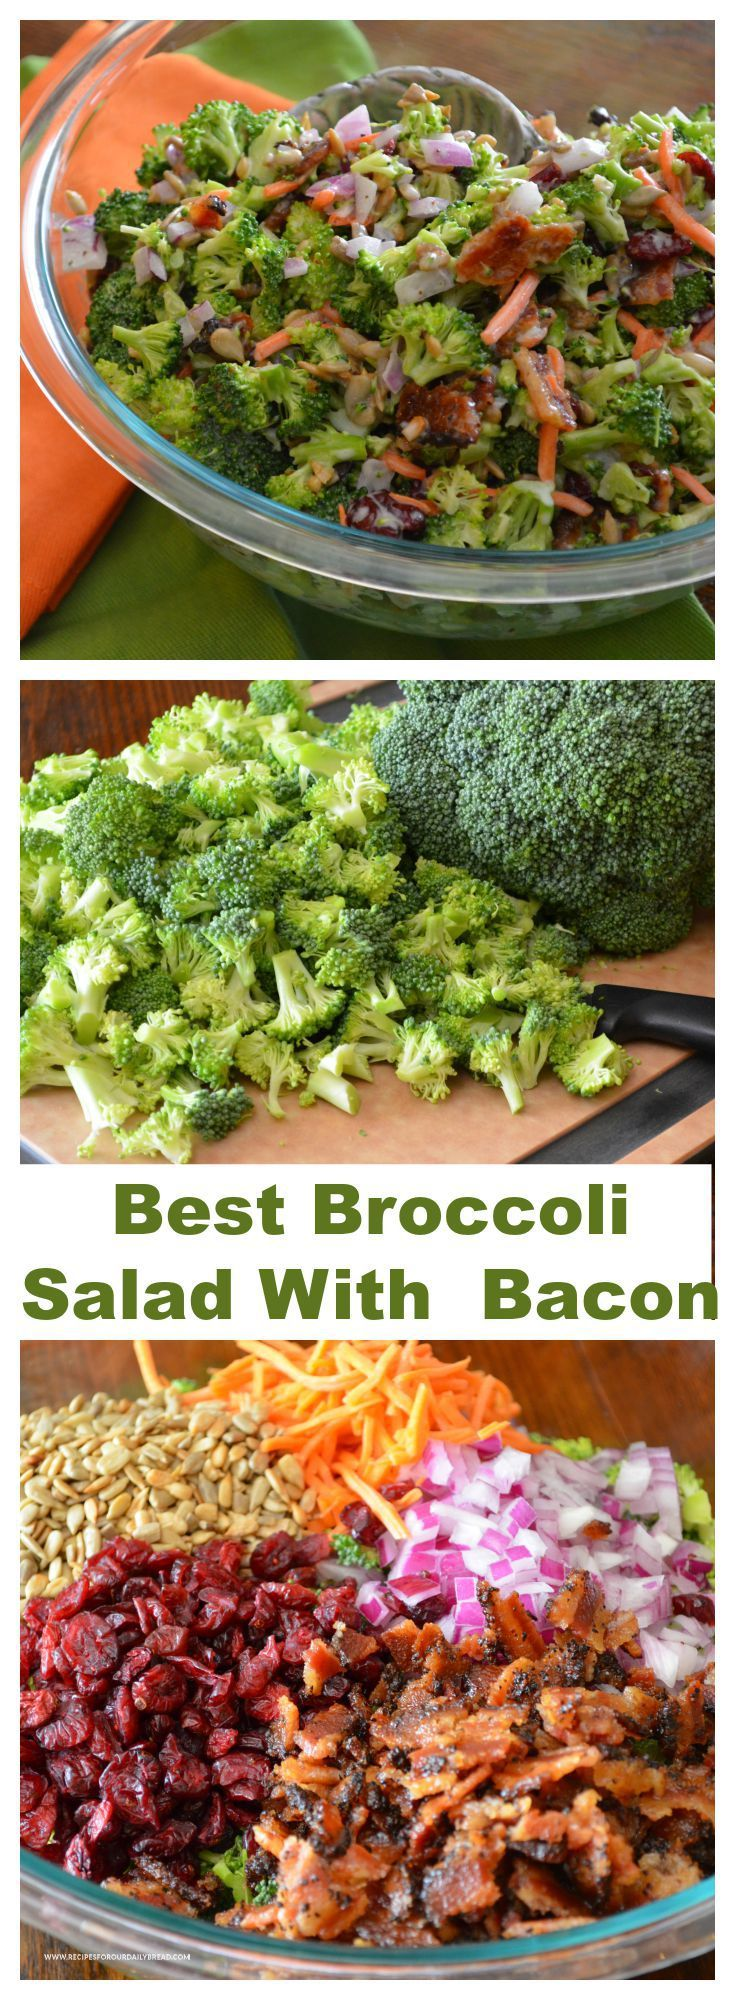 Broccoli Salad with Bacon Recipe. @almalou05 I think I found Laura's recipe!